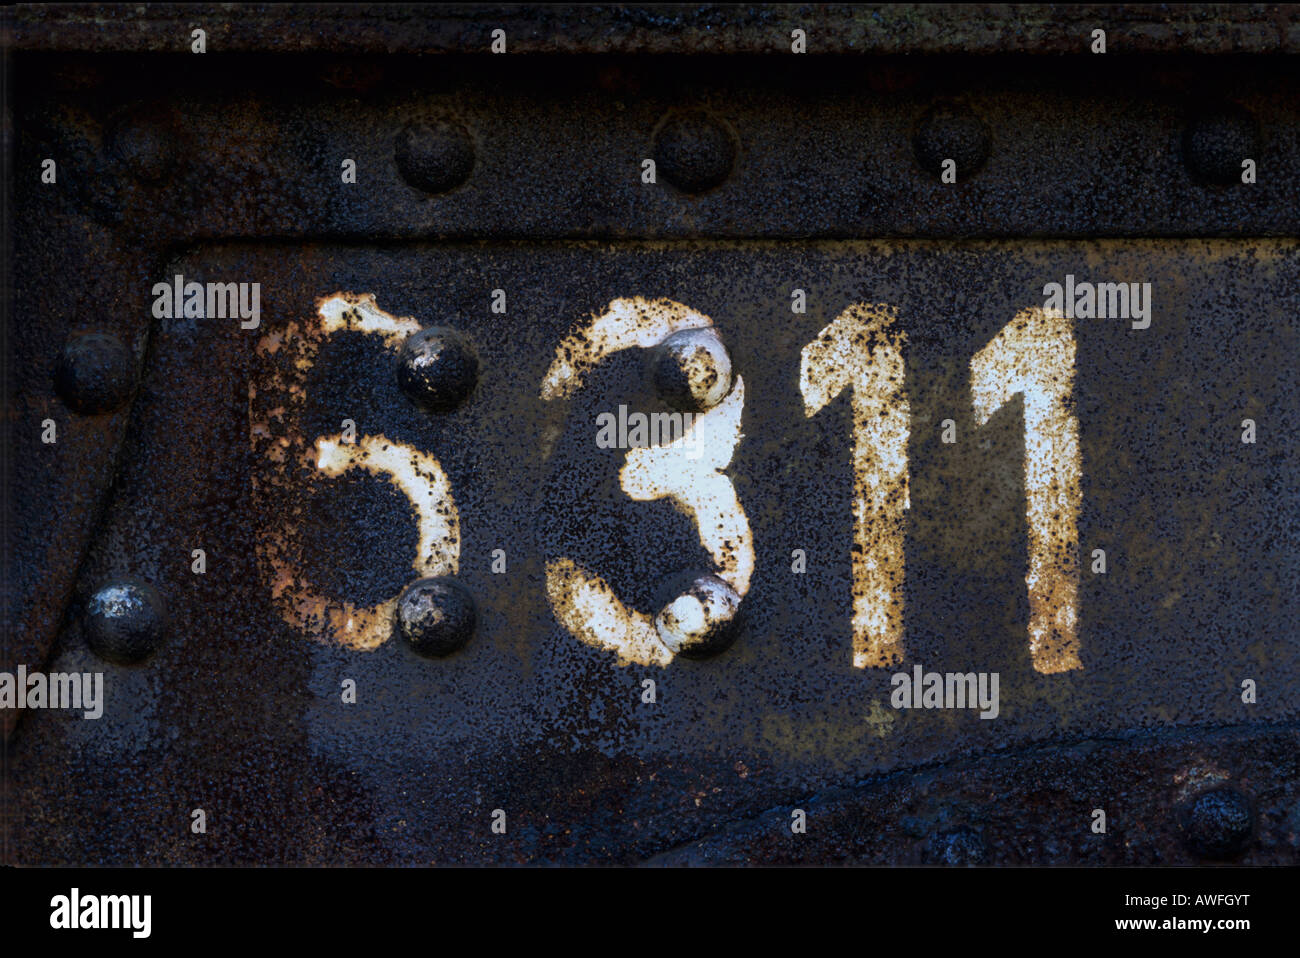 White numbers painted on a rusty old metal surface - Stock Image